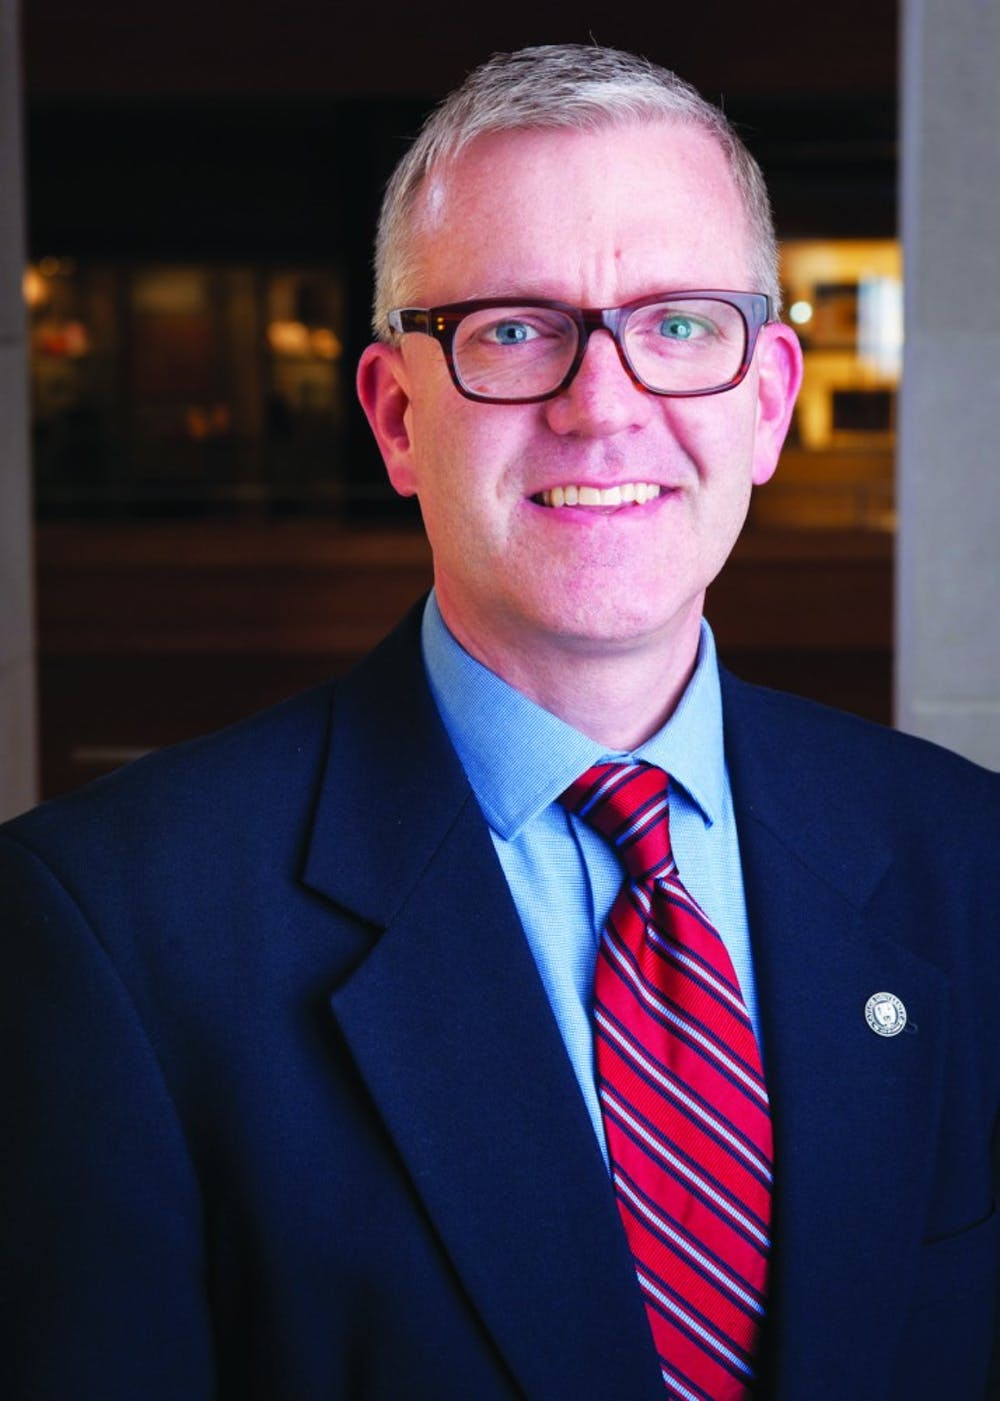 New provost appointed for next year